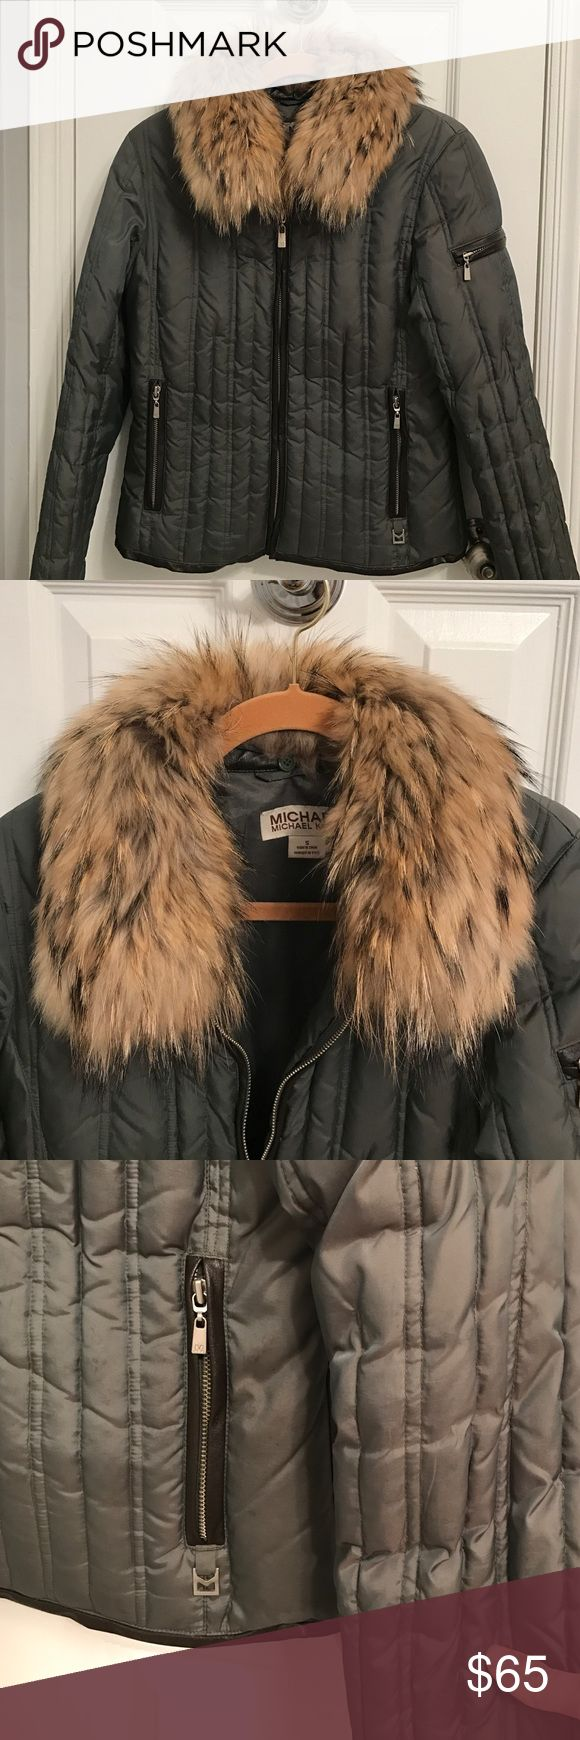 Olive green Michael Kors winter jacket Olive green Michael Kors winter jacket size small. Fur accent around the collar that is removable. Leather accents by the pockets, main zipper and cuffs. MICHAEL Michael Kors Jackets & Coats